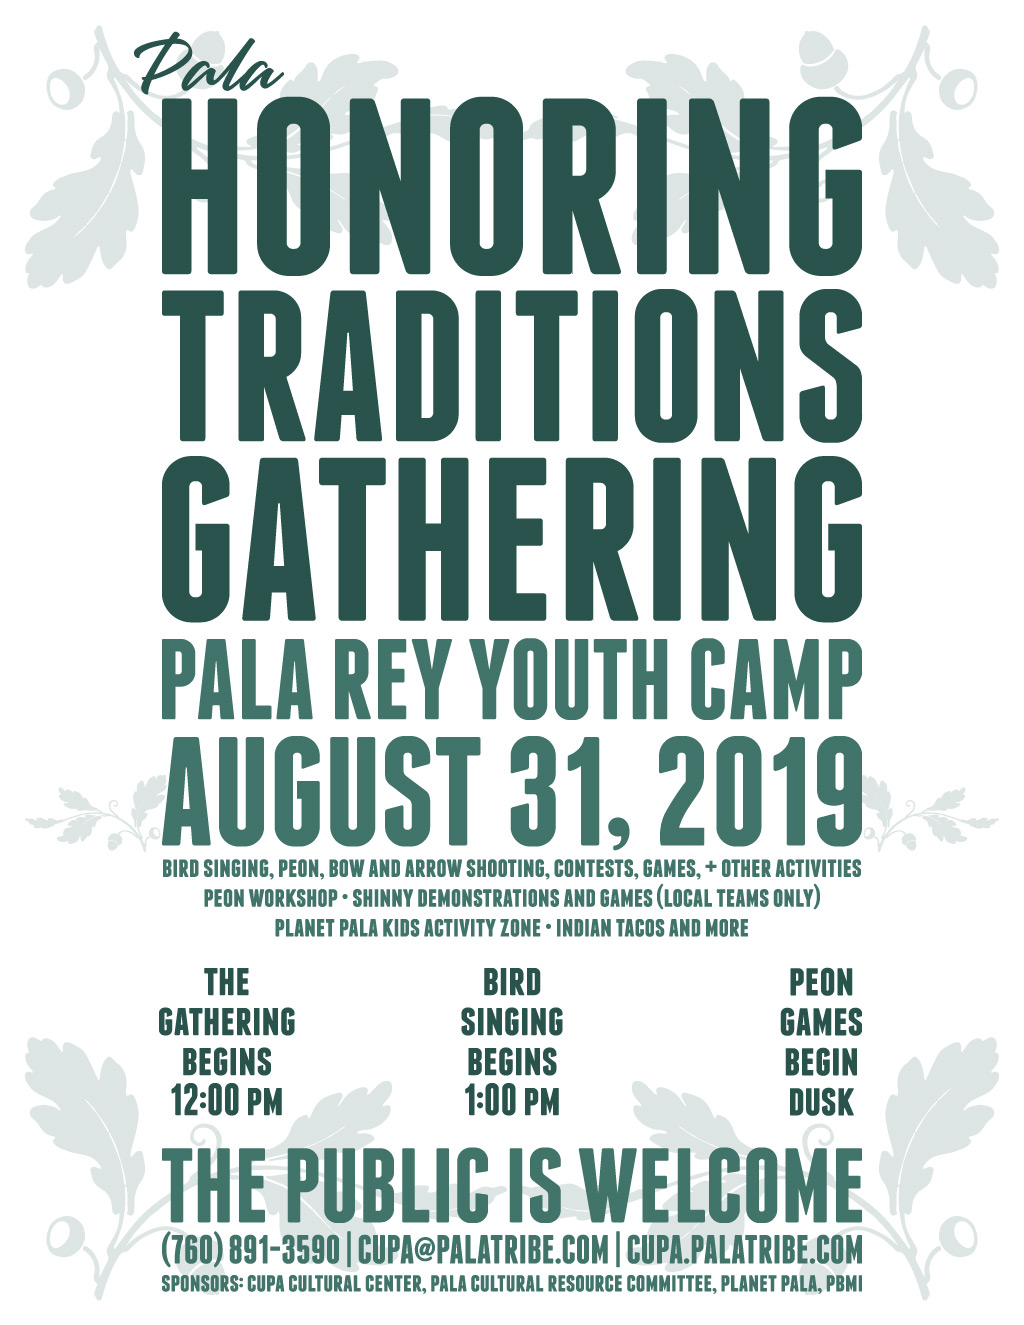 Pala Band California Cupa Cultural Center Event Honoring Traditions Gathering